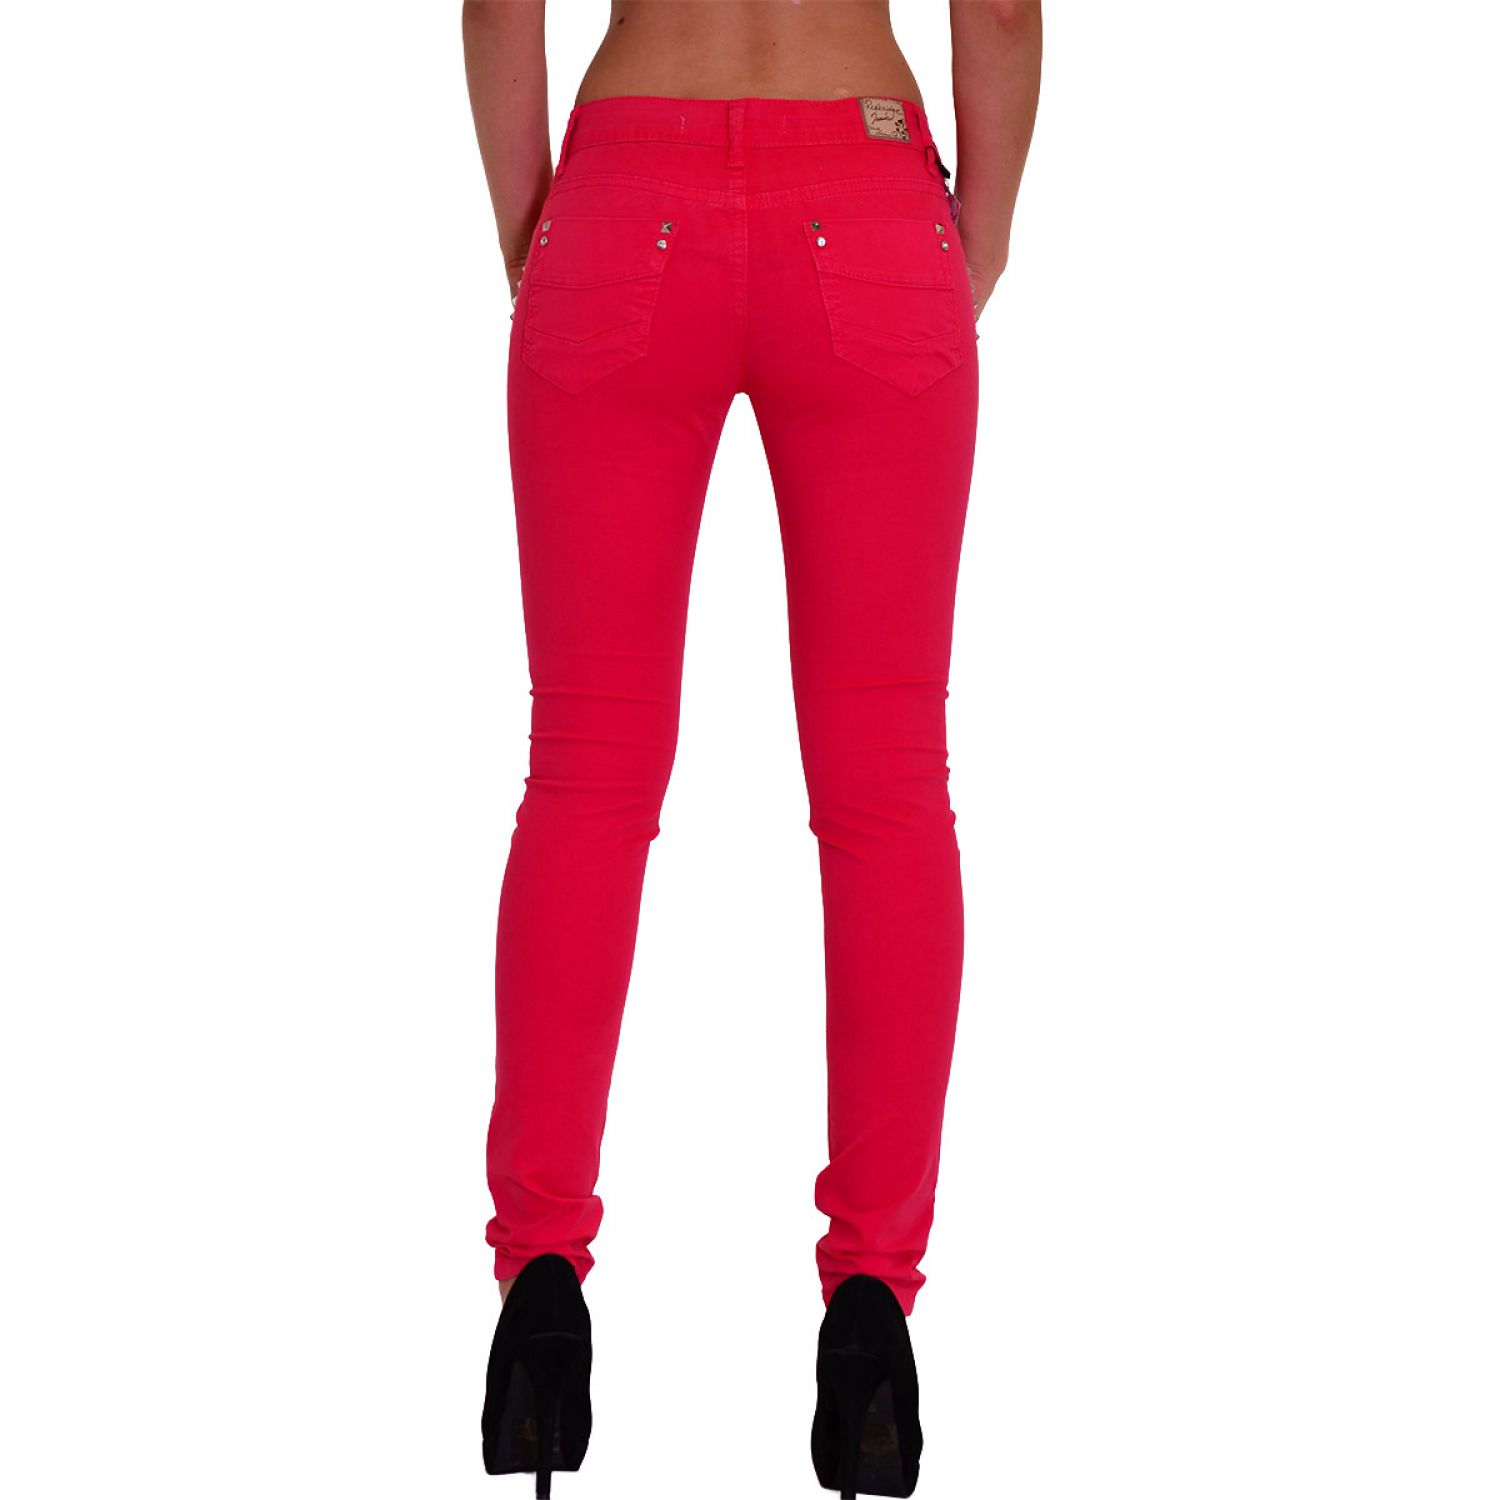 53c7fdece549 Redbridge Red Bridge Jeans Damen Chino Hose rot sexy Skinny Slim Fit ...